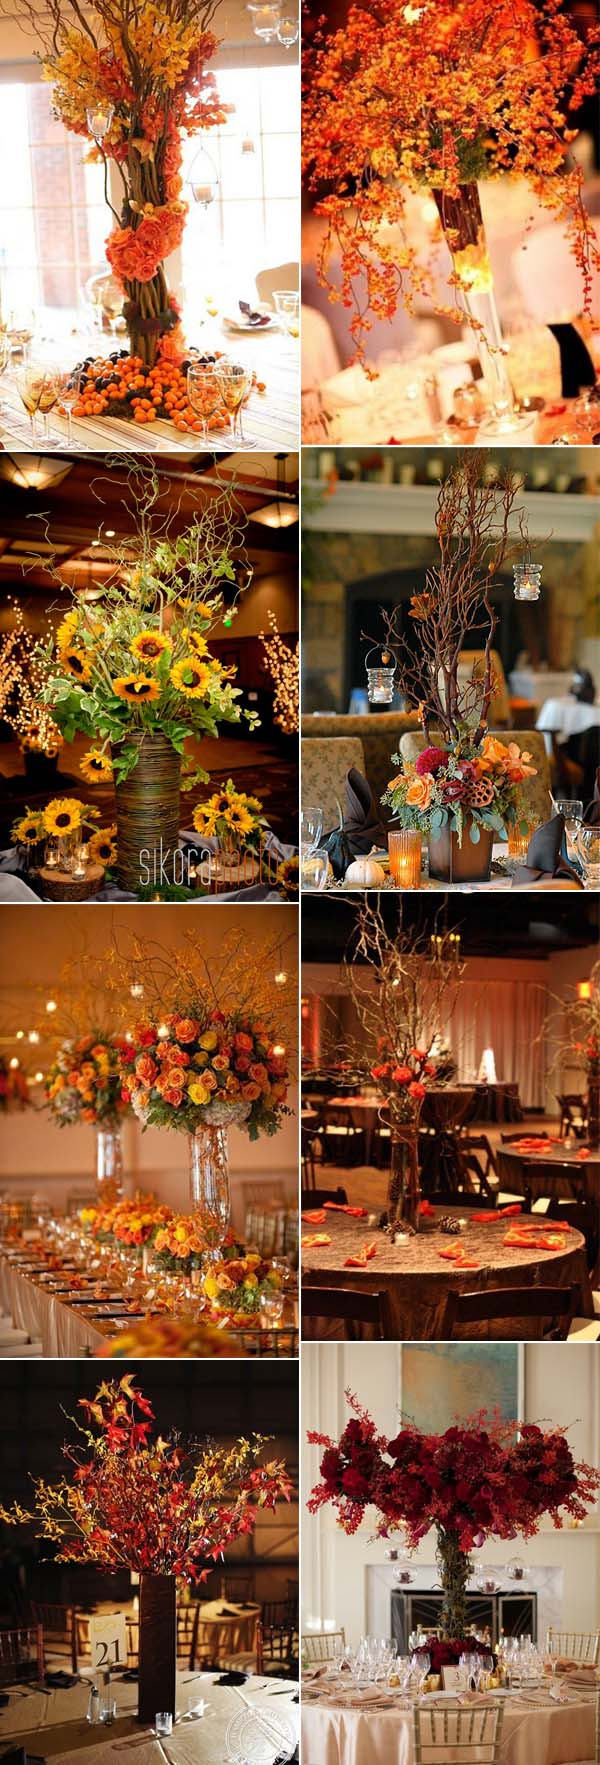 Fall Wedding Decoration Ideas 46 Inspirational Fall Autumn Wedding Centerpieces Ideas